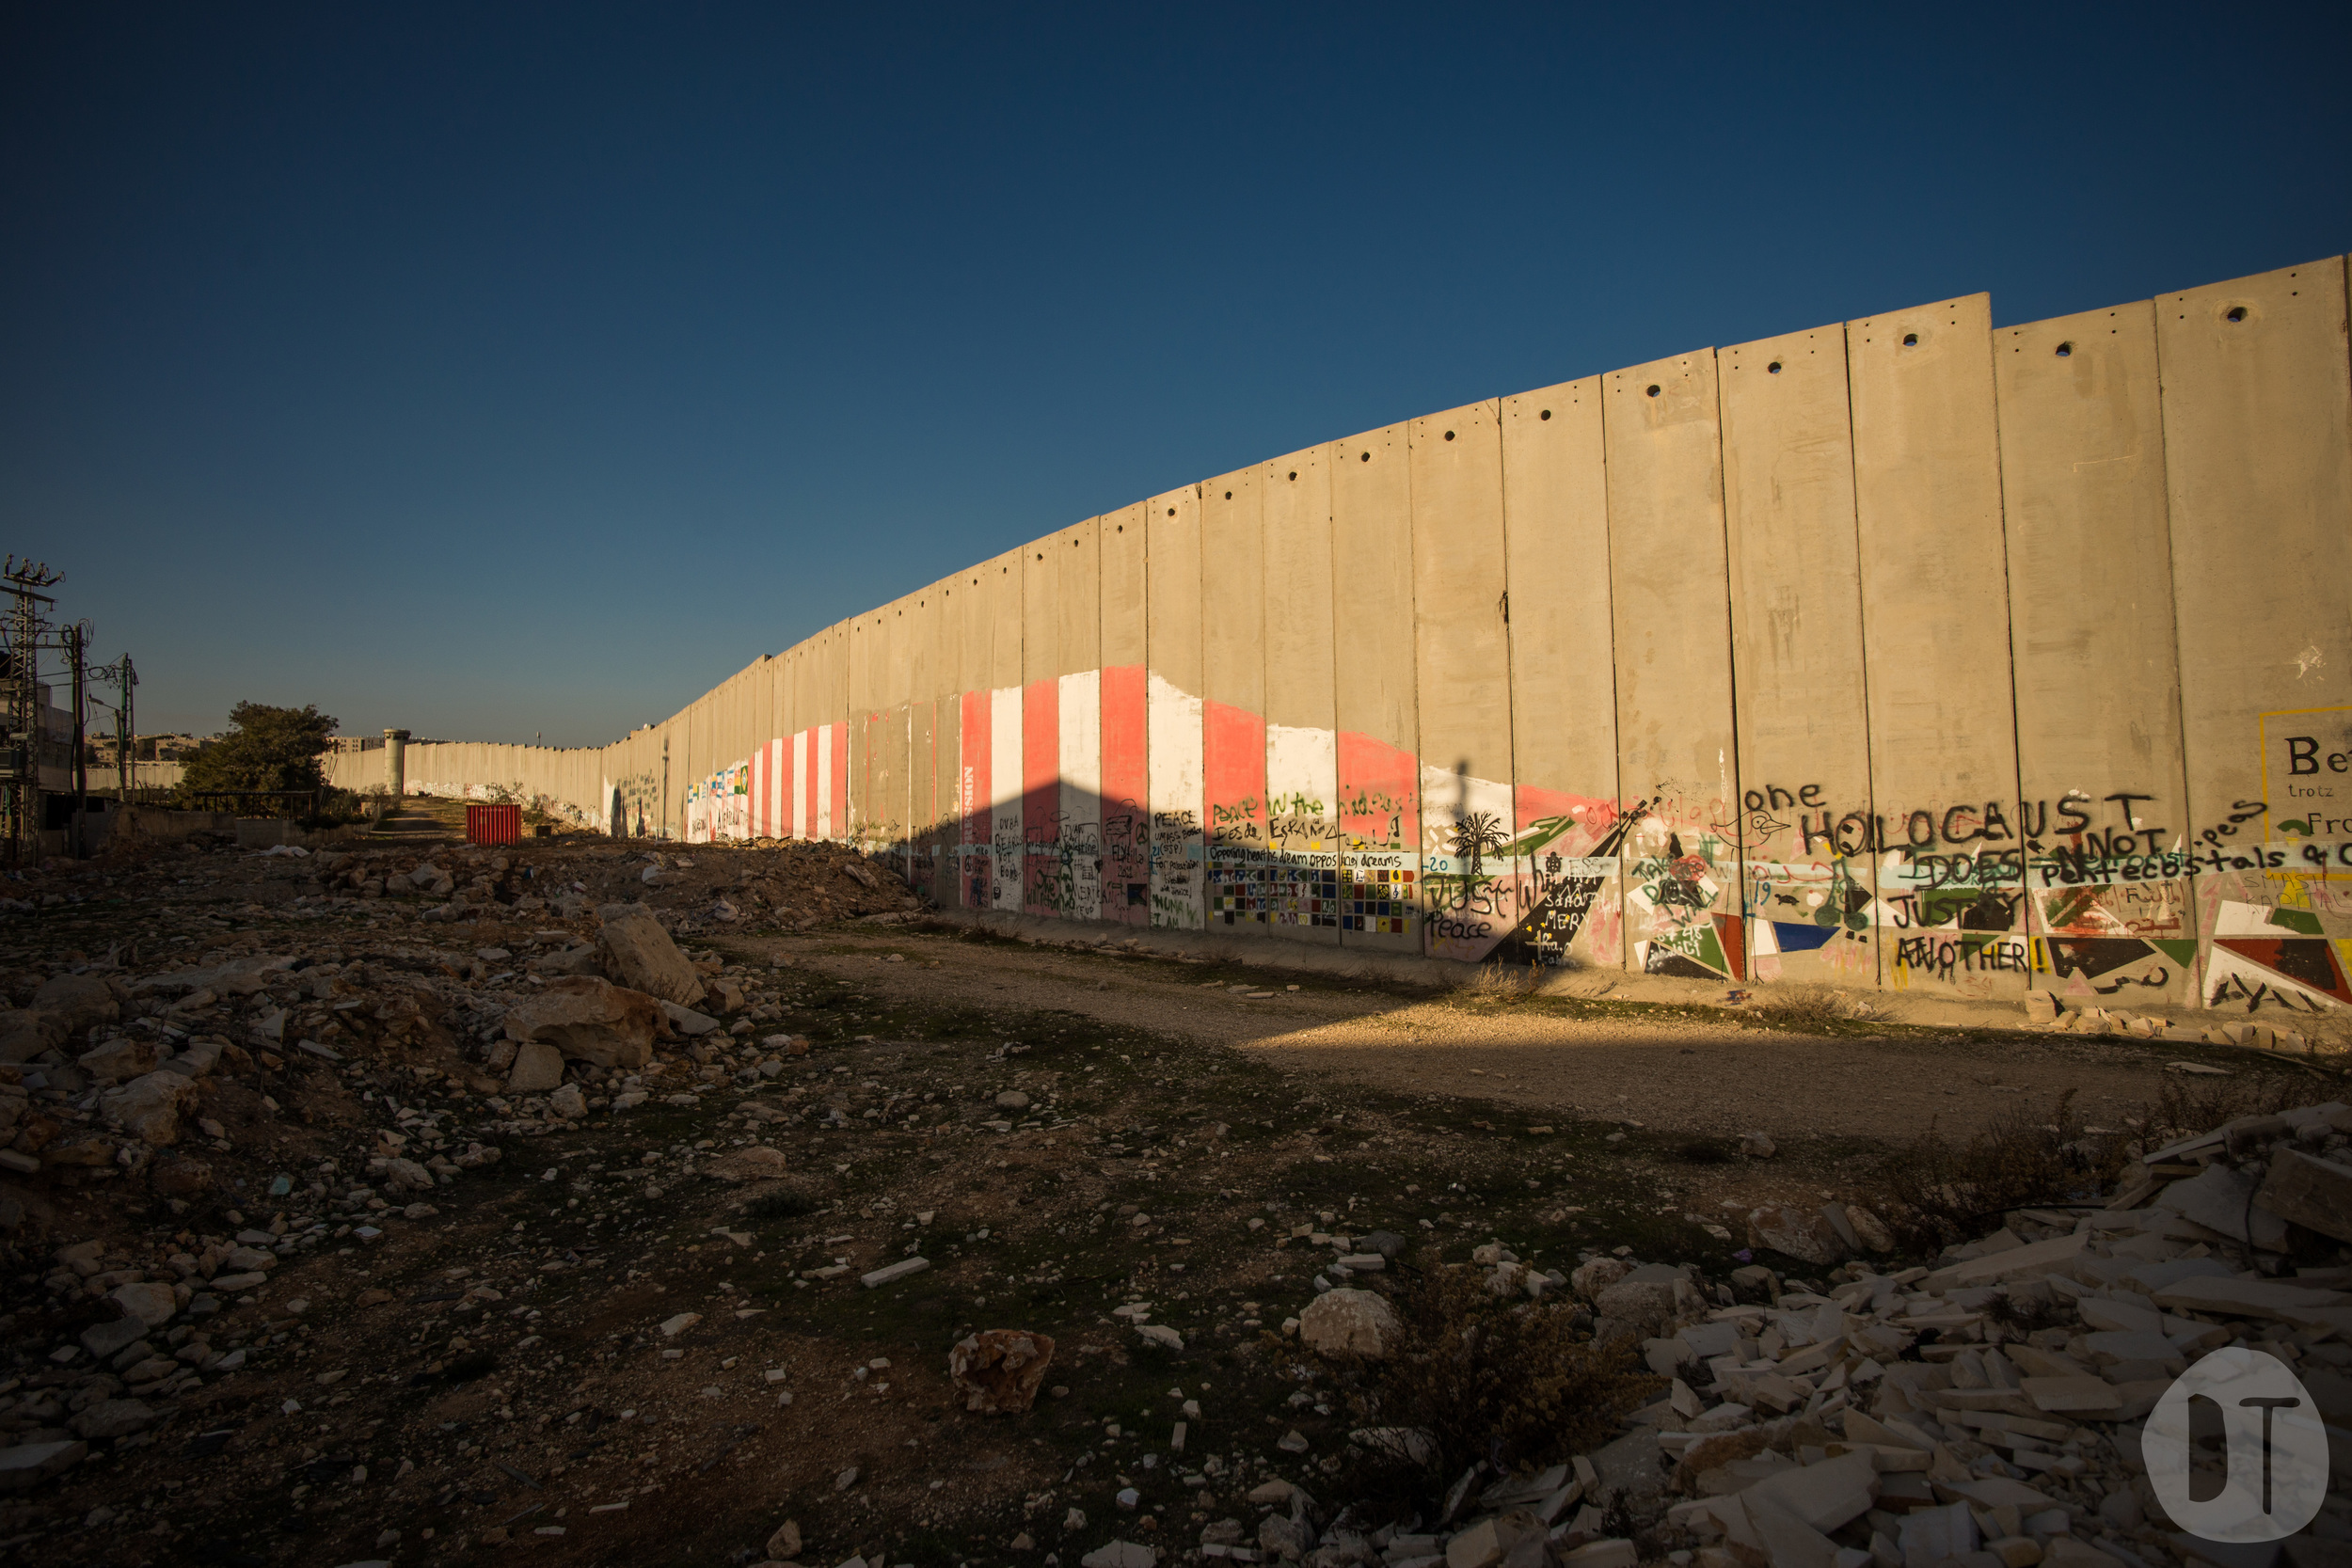 The separation barrier does not follow any recognised border. At this point near  Bethlehem  it has been specifically routed to enclose  Rachel's Tomb - a religious site revered by all three monotheistic religions.